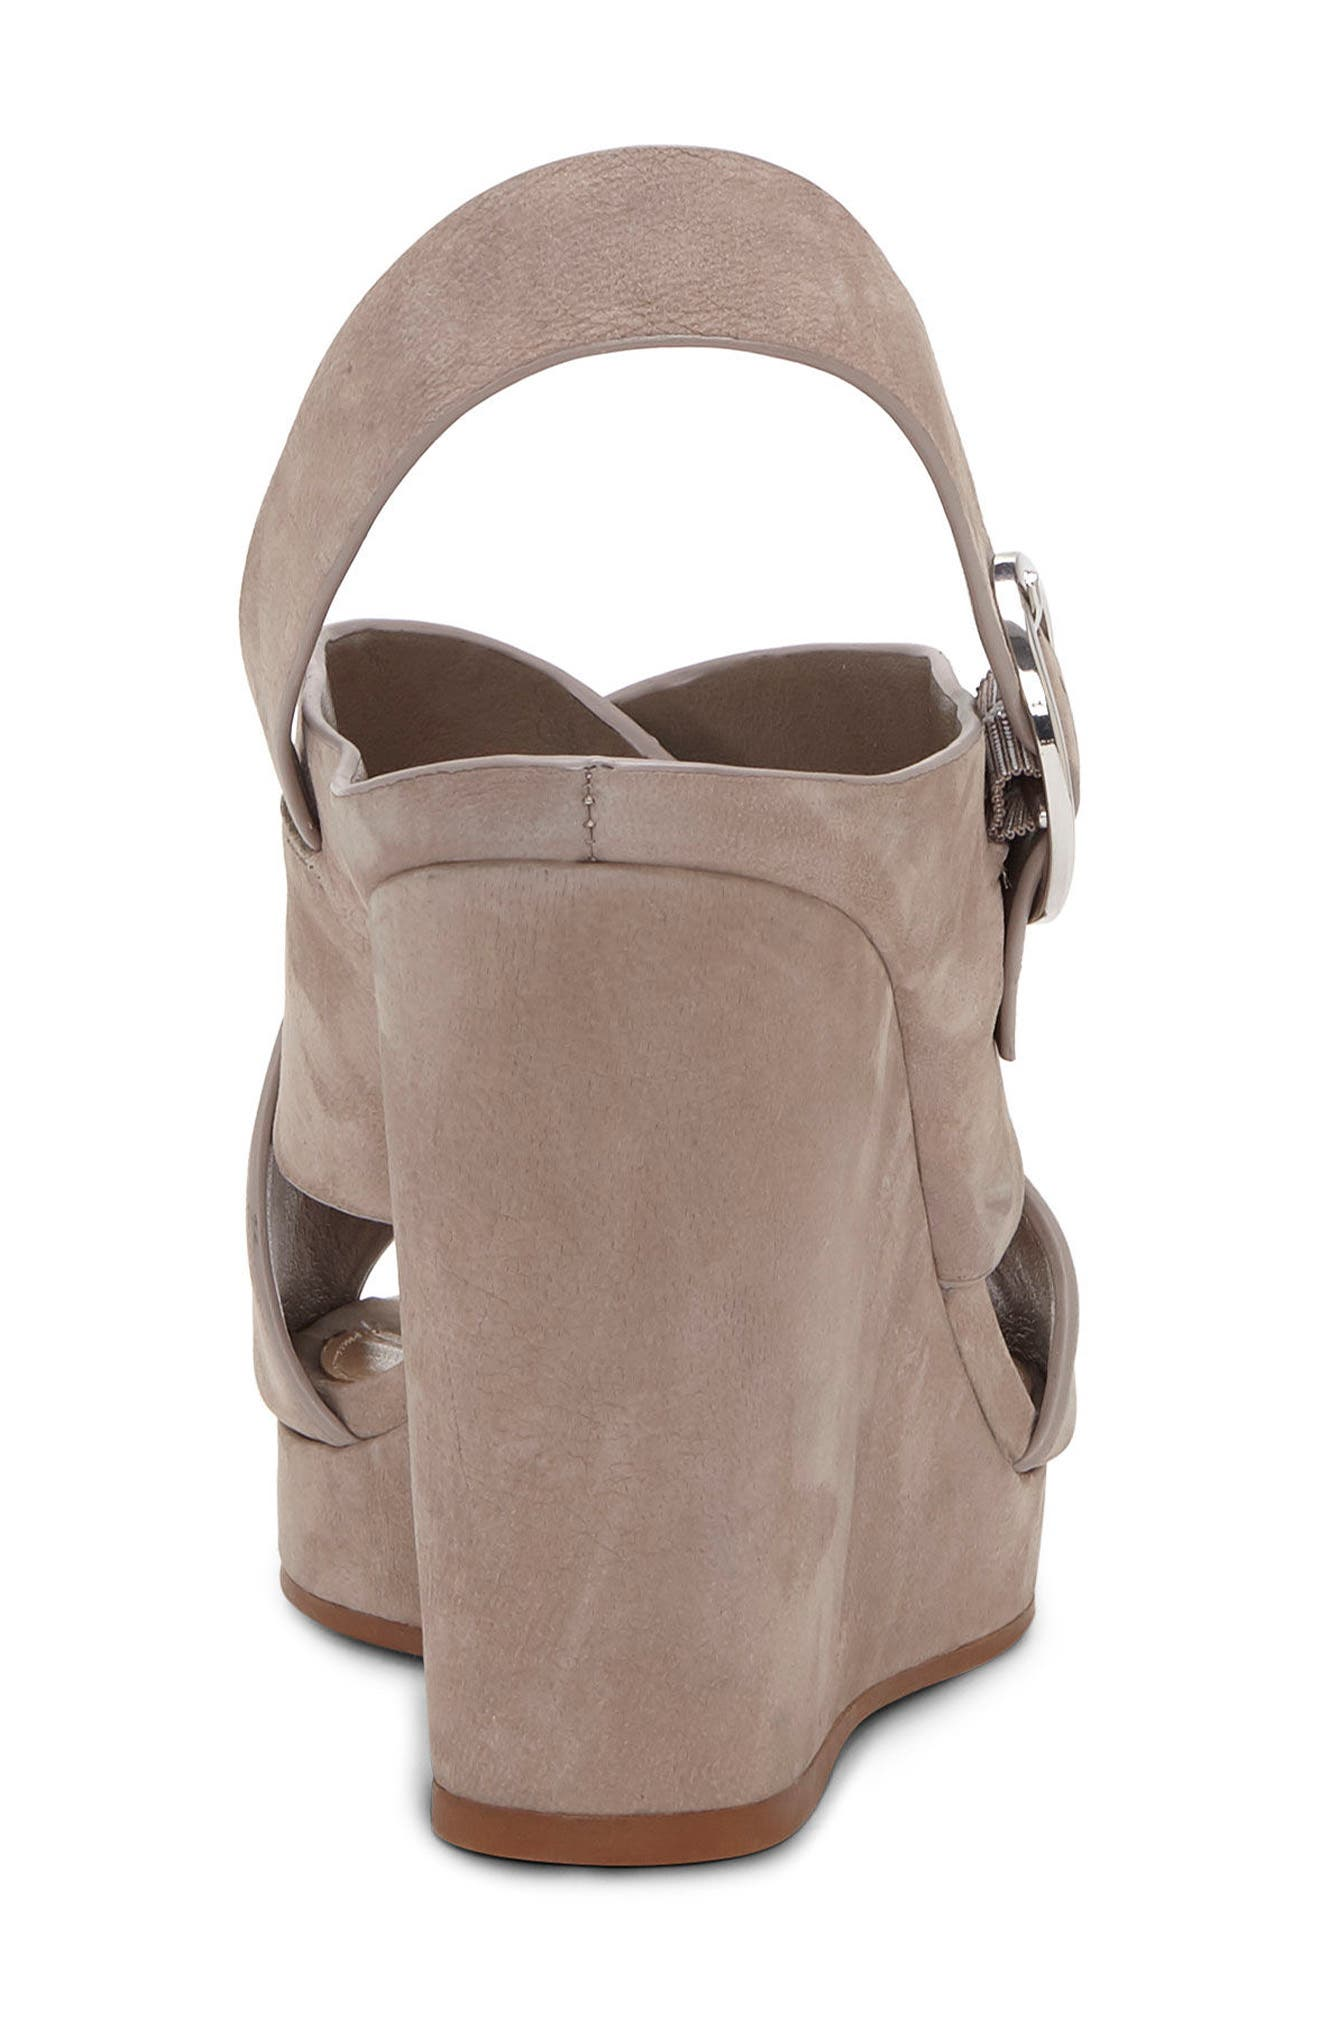 Iteena Wedge Sandal,                             Alternate thumbnail 6, color,                             Hippo Grey Leather